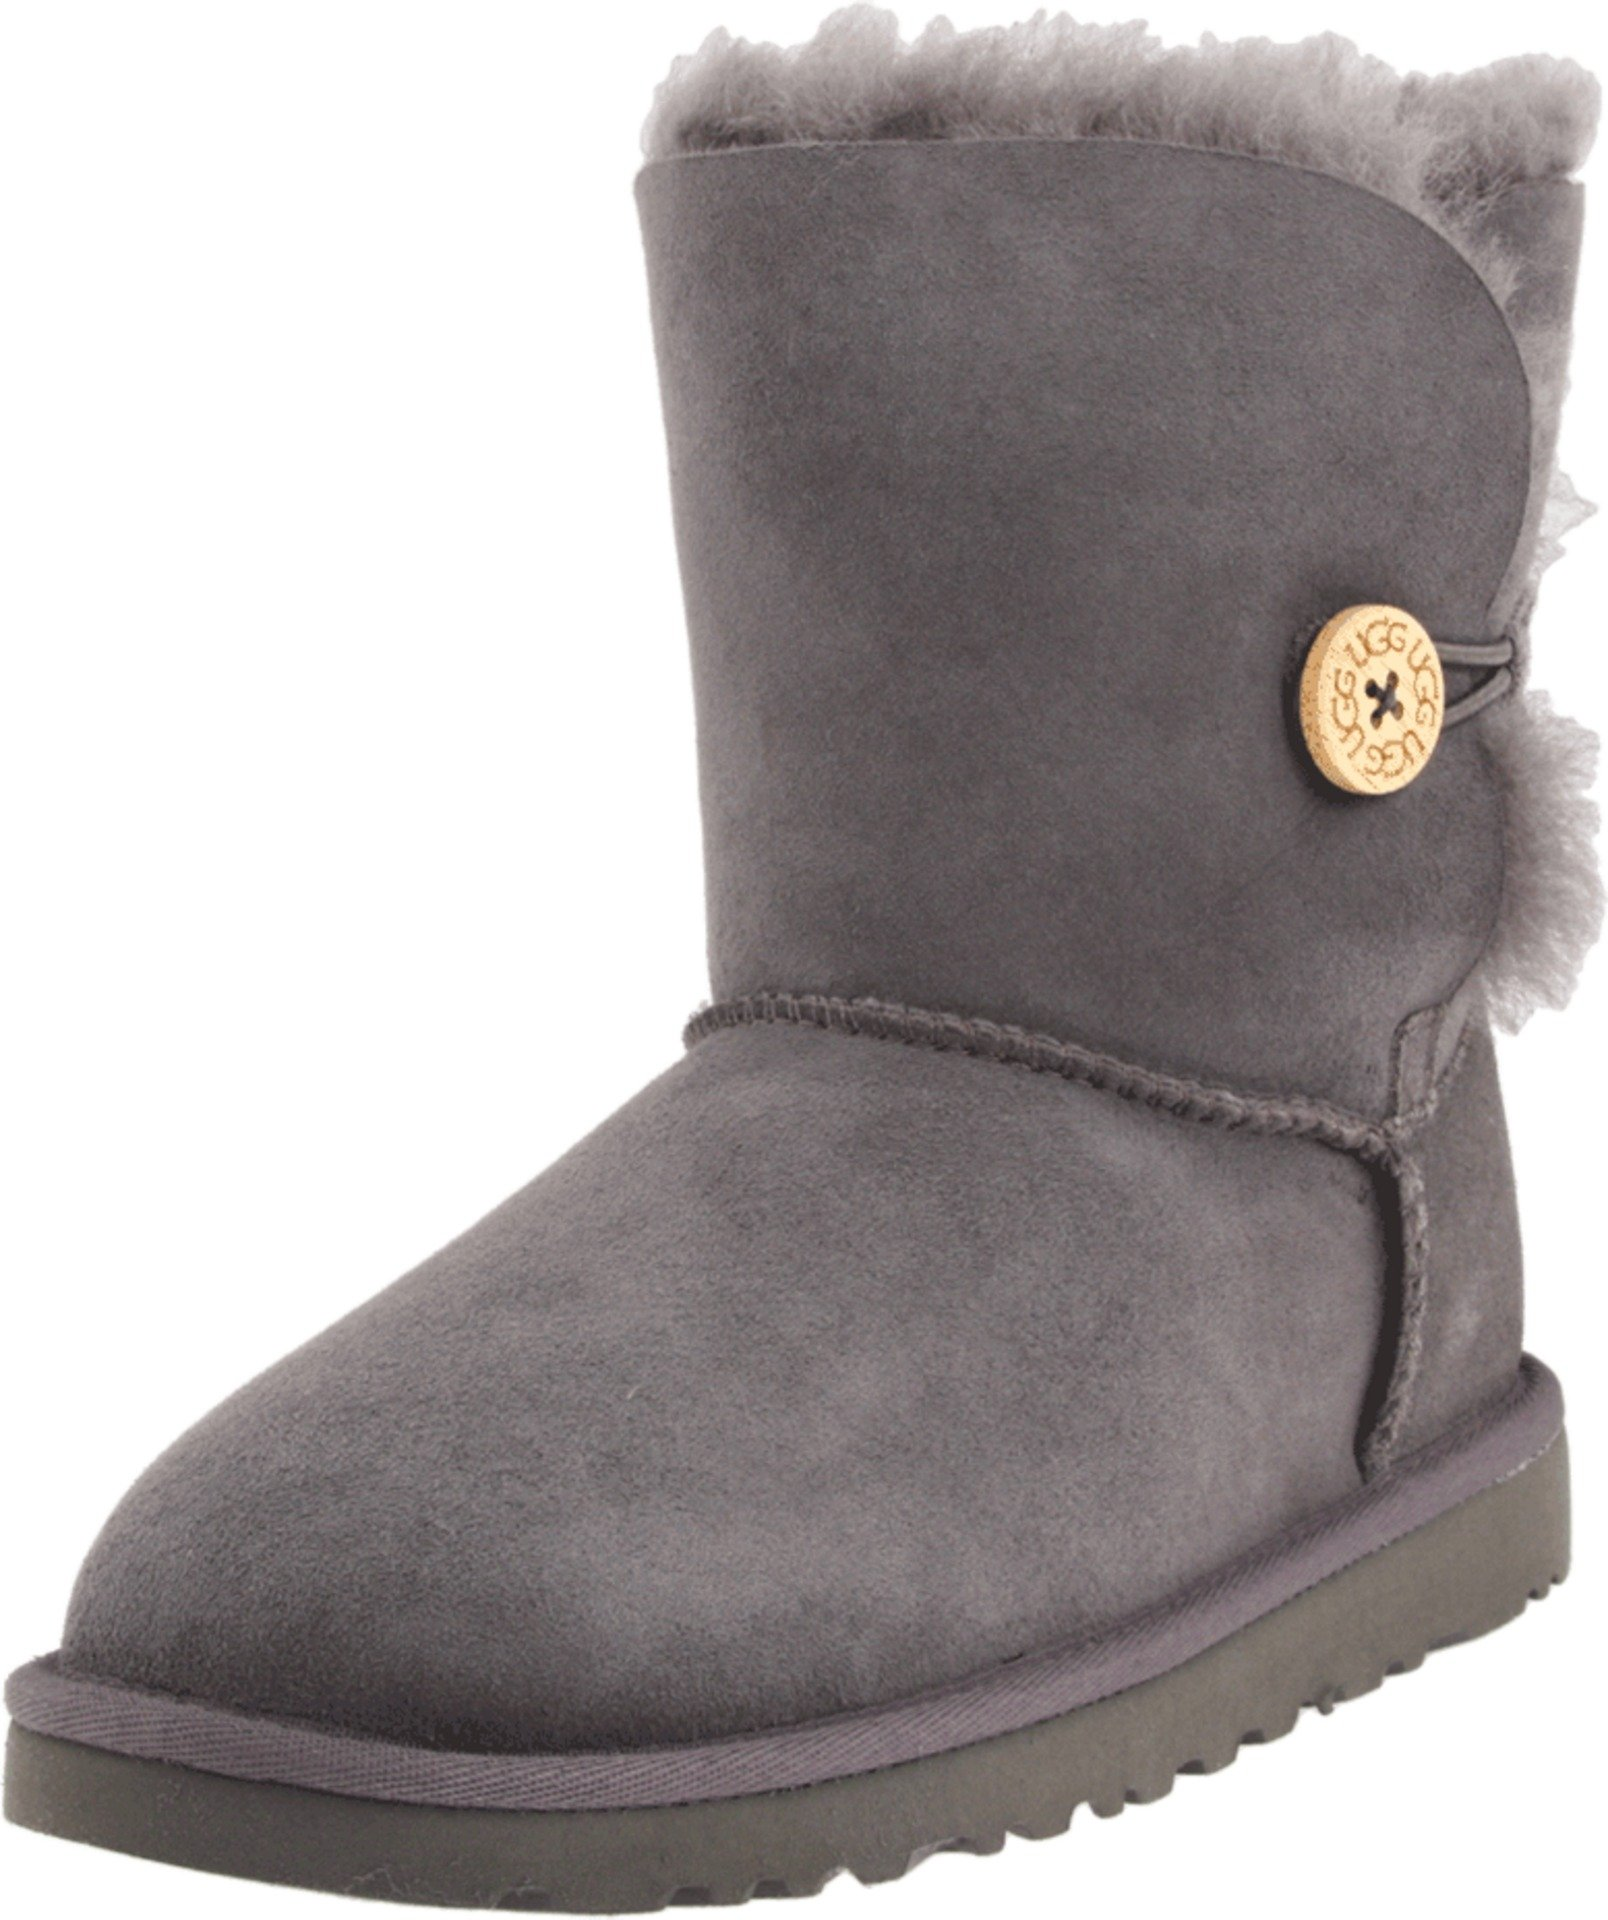 UGG Australia Bailey Button Girls Boots Grey 5, 2012